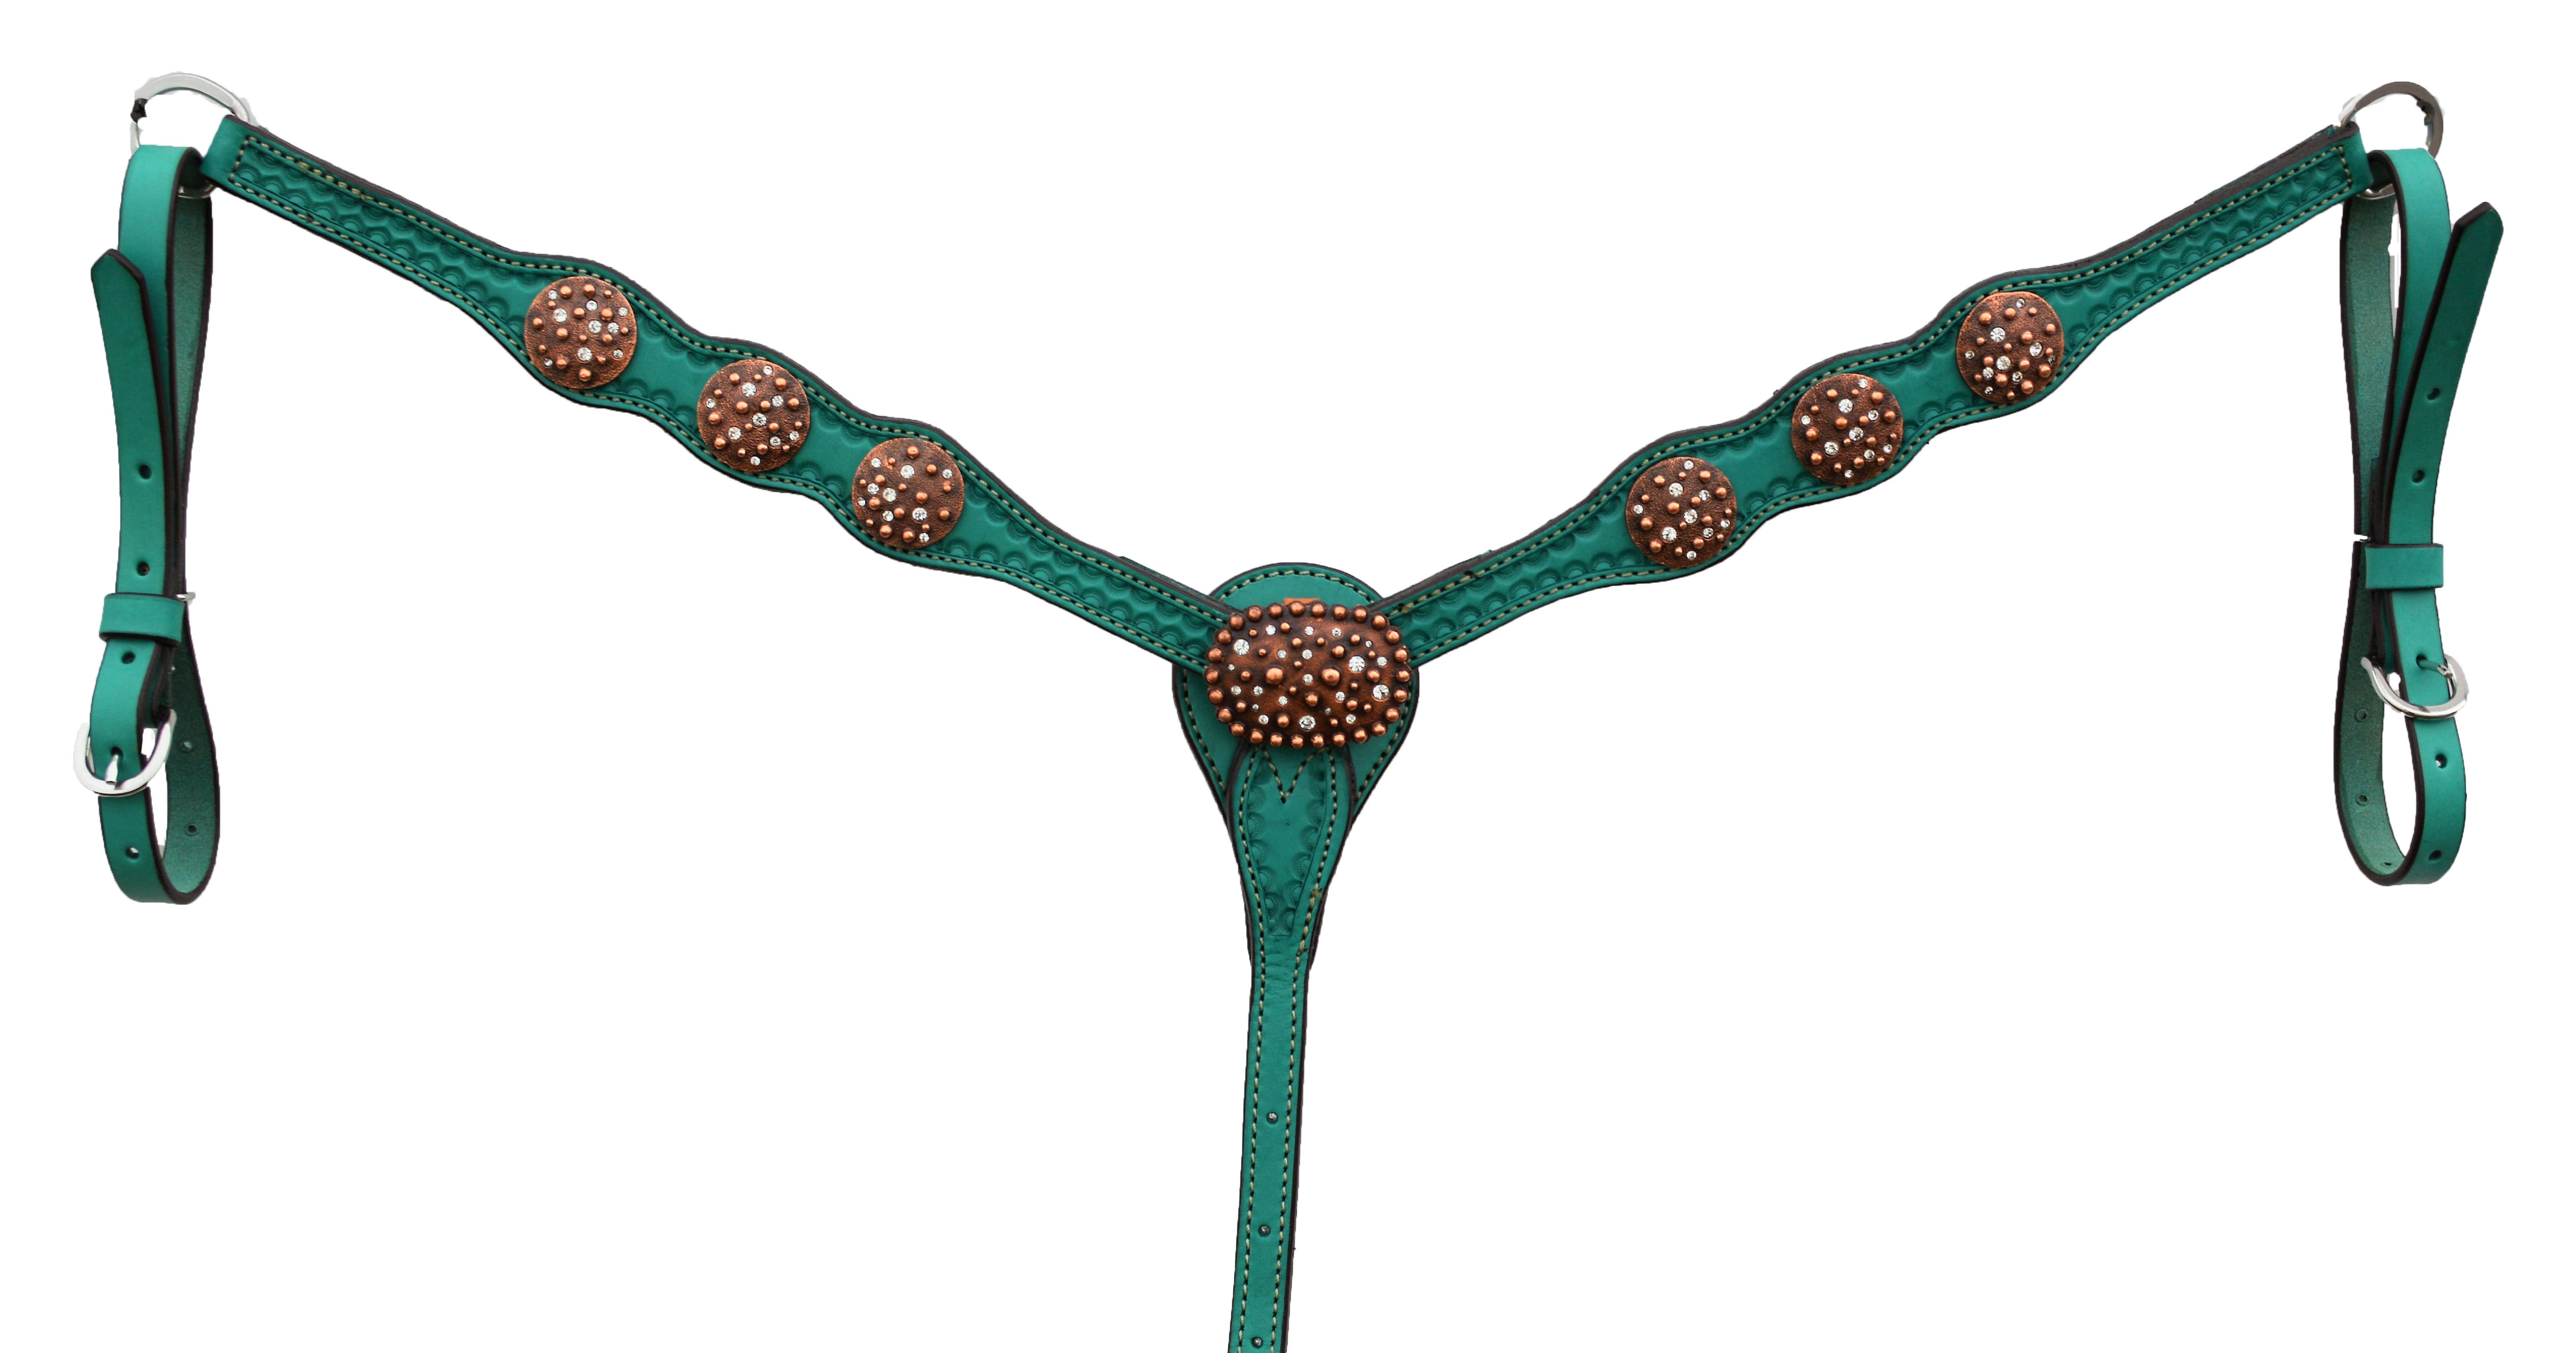 3037-QCI Scalloped, turquoise leather breastcollar with border shell tooling. 4 CI Conchos and Buckles